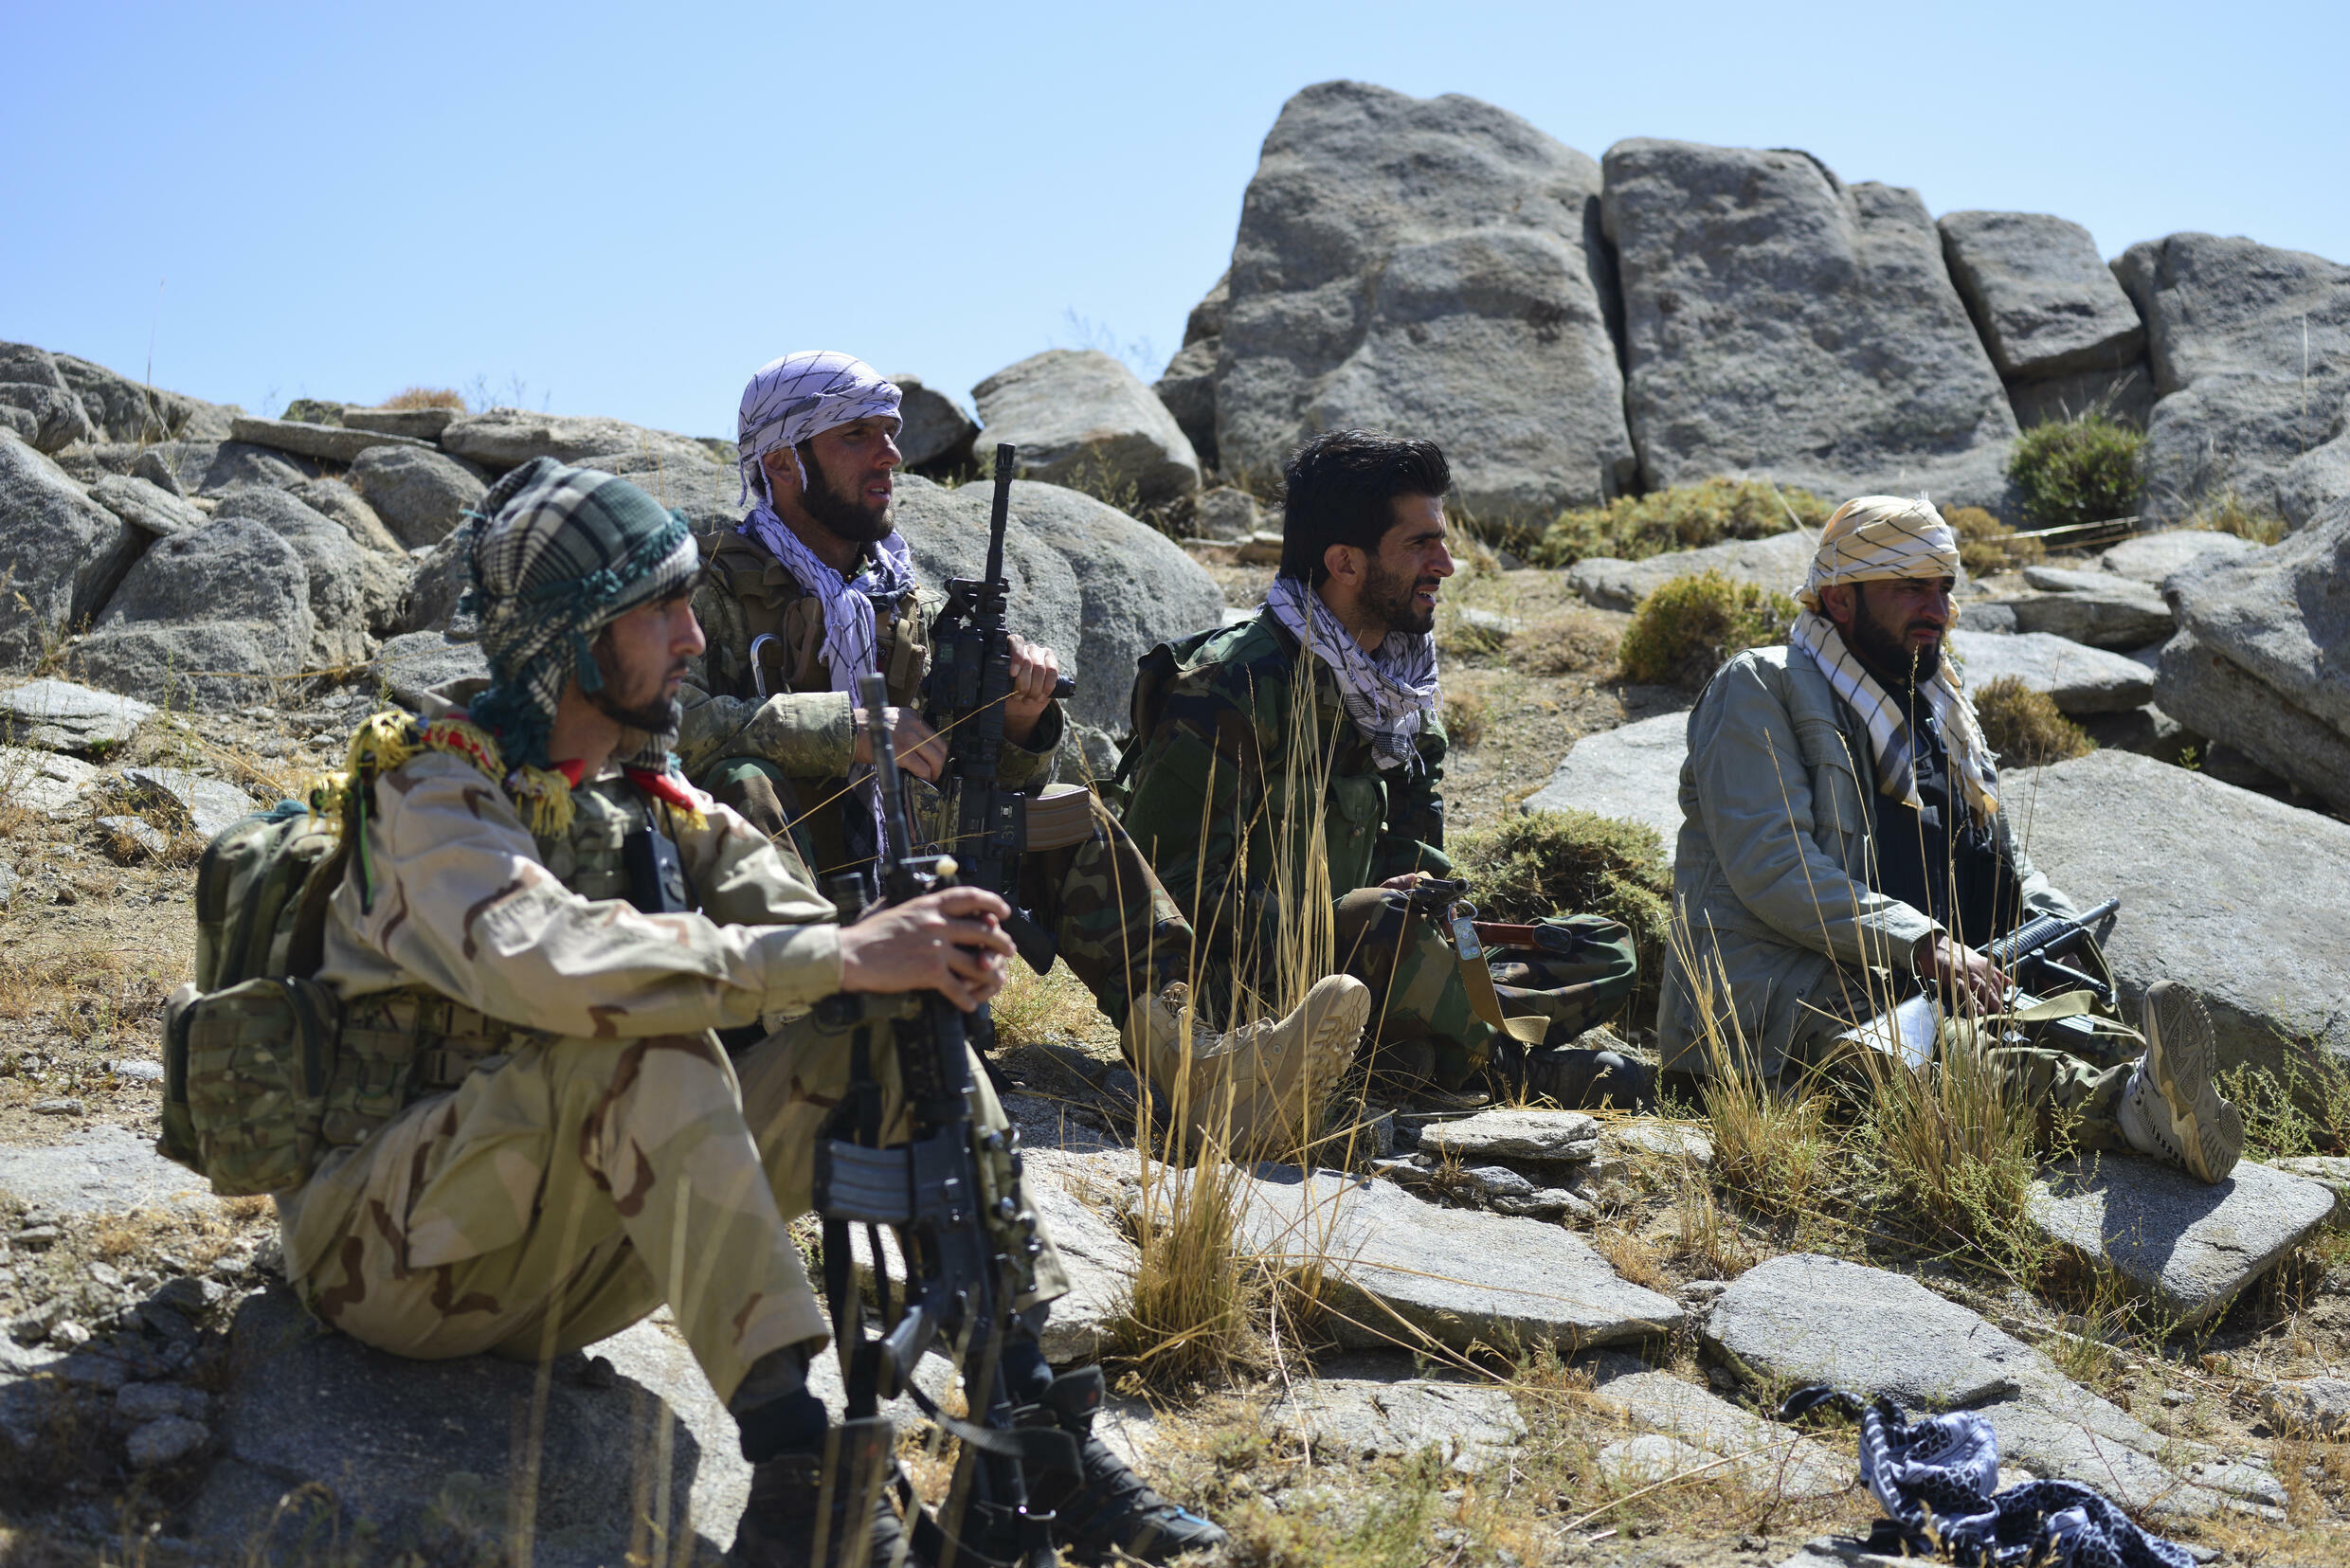 Afghan resistance movement and anti-Taliban uprising forces take rest as they patrol on a hilltop in Darband area in Anaba district, Panjshir province on September 1, 2021. - Panjshir -- famous for its natural defences never penetrated by Soviet forces or the Taliban in earlier conflicts -- remains the last major holdout of anti-Taliban forces led by Ahmad Massoud, son of the famed Mujahideen leader Ahmed Shah Massoud.